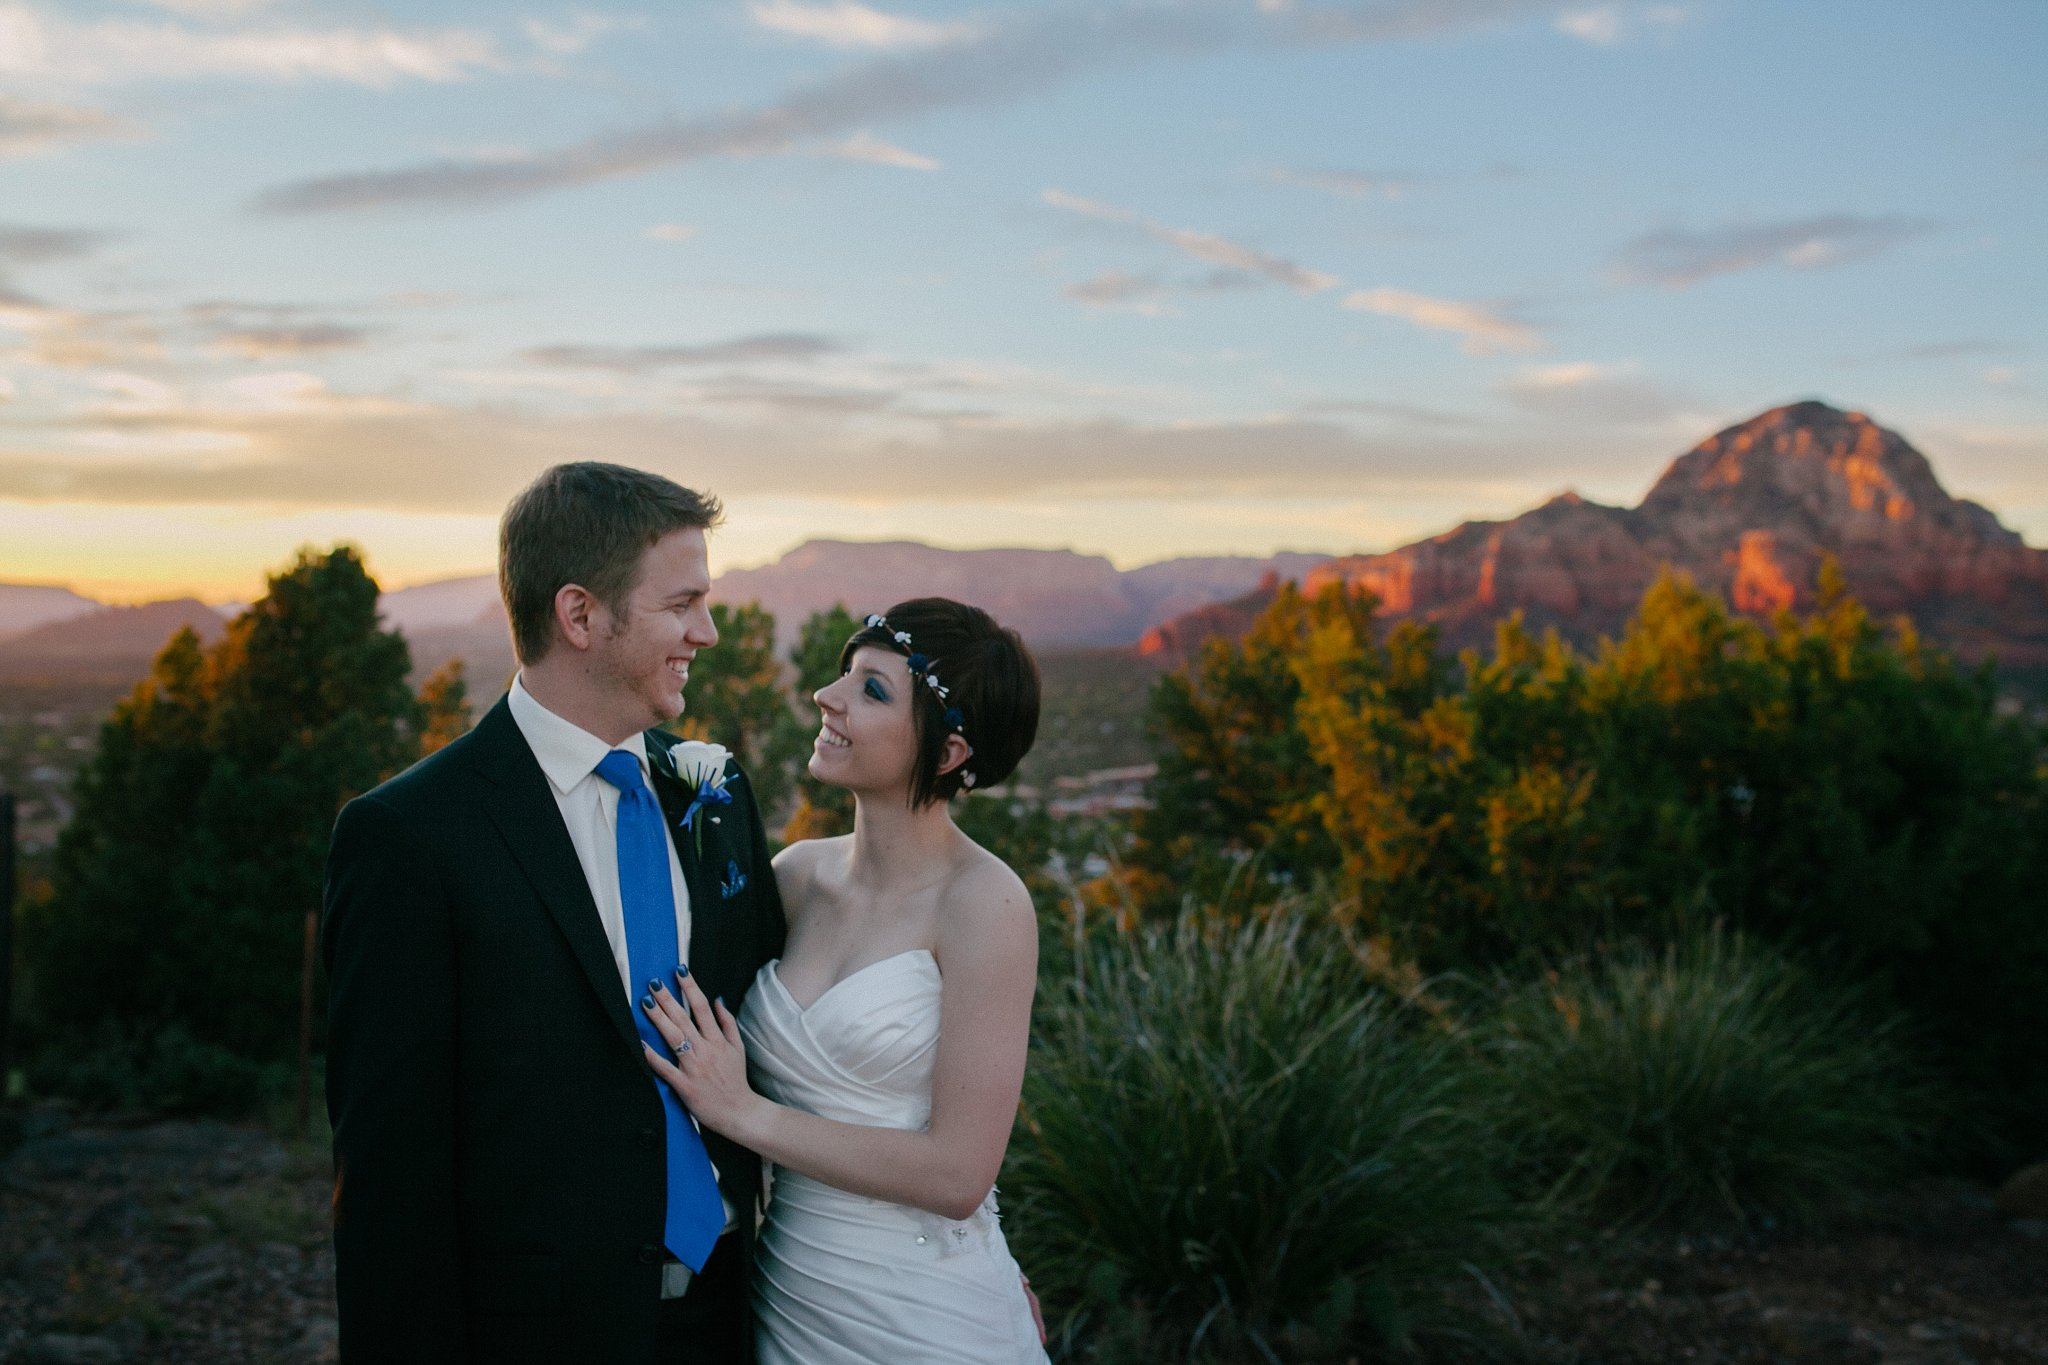 bride & groom eloping in Sedona red rocks at Sunset